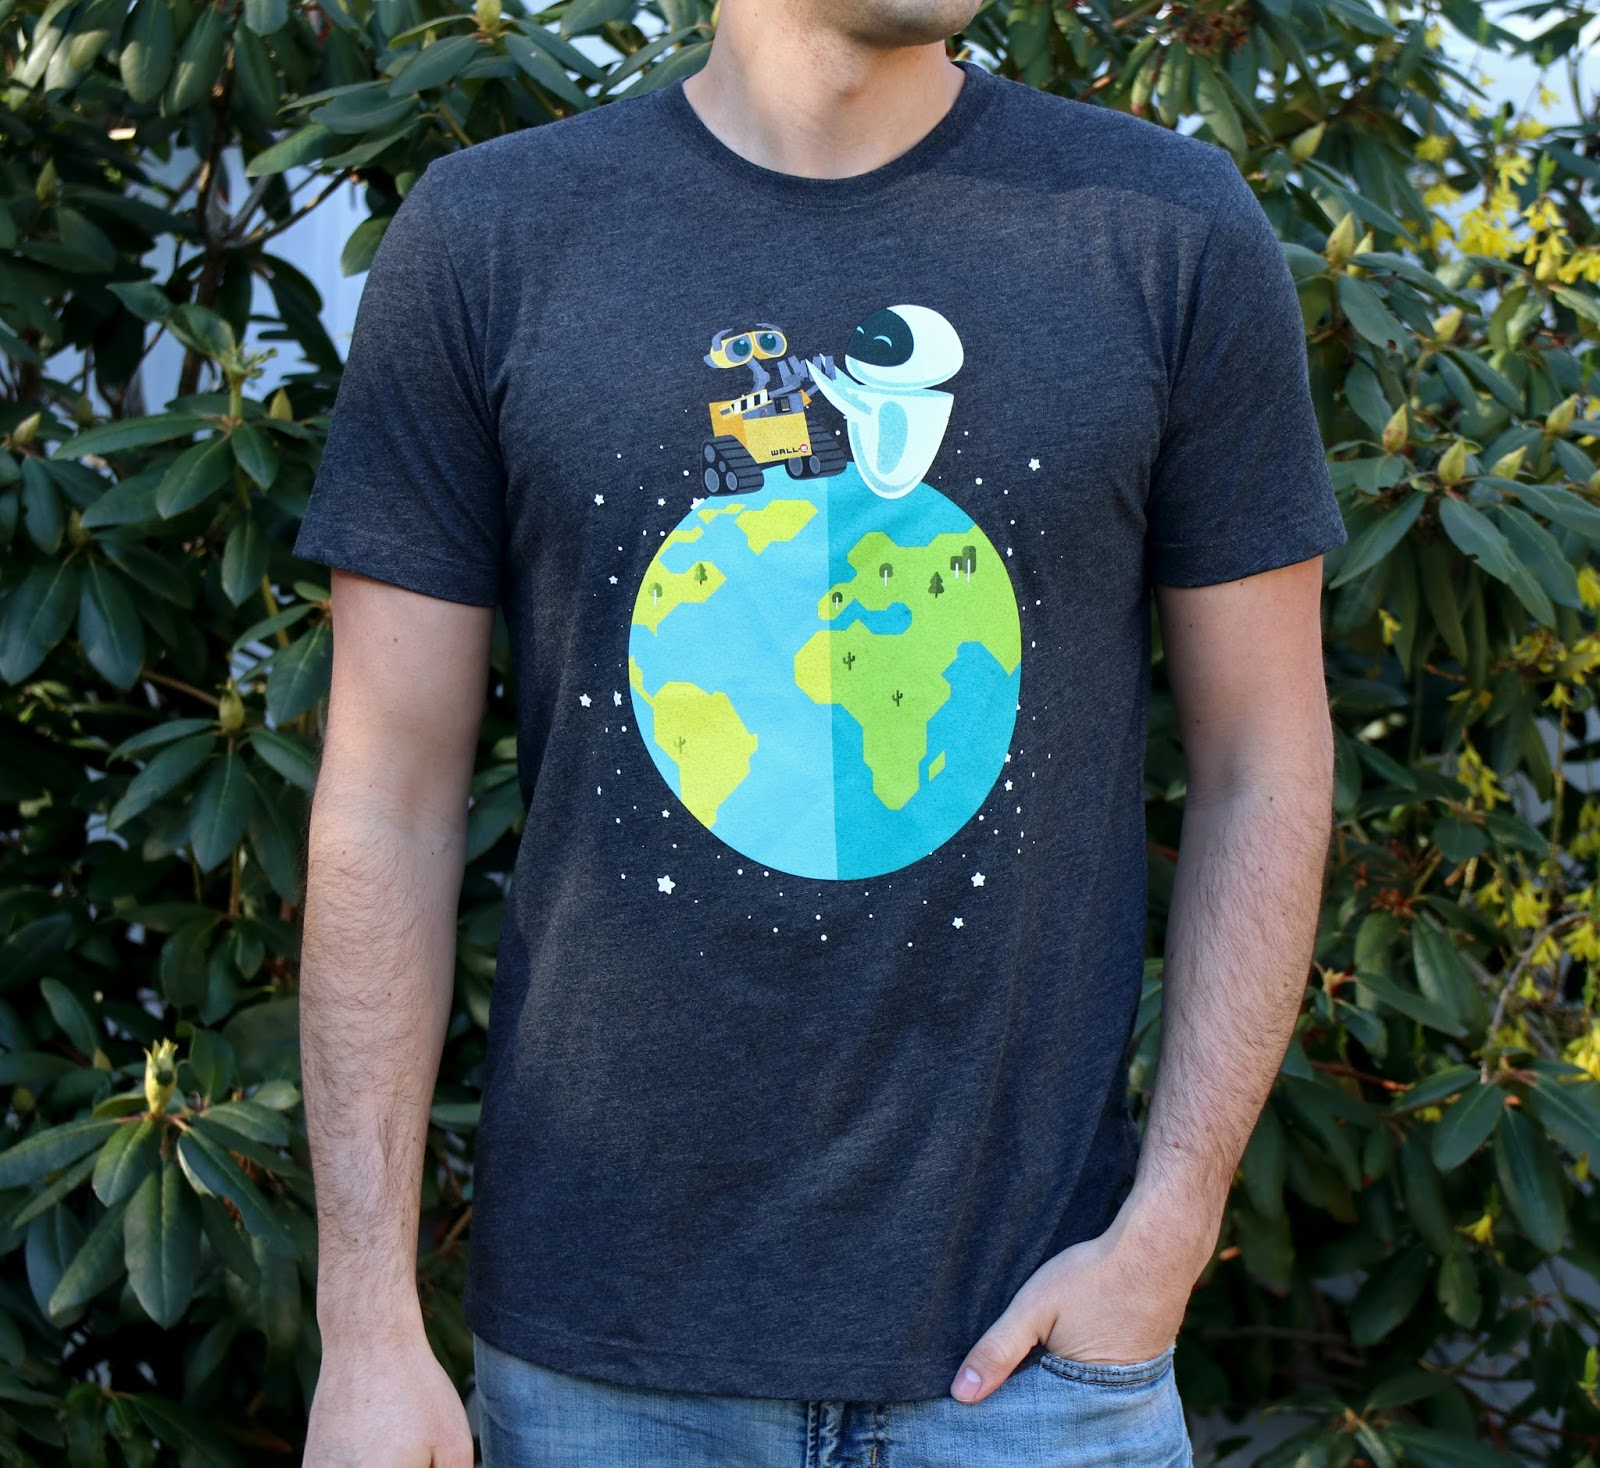 Wall·E & Eve Earth Day 2018 T-Shirt BoxLunch Exclusive